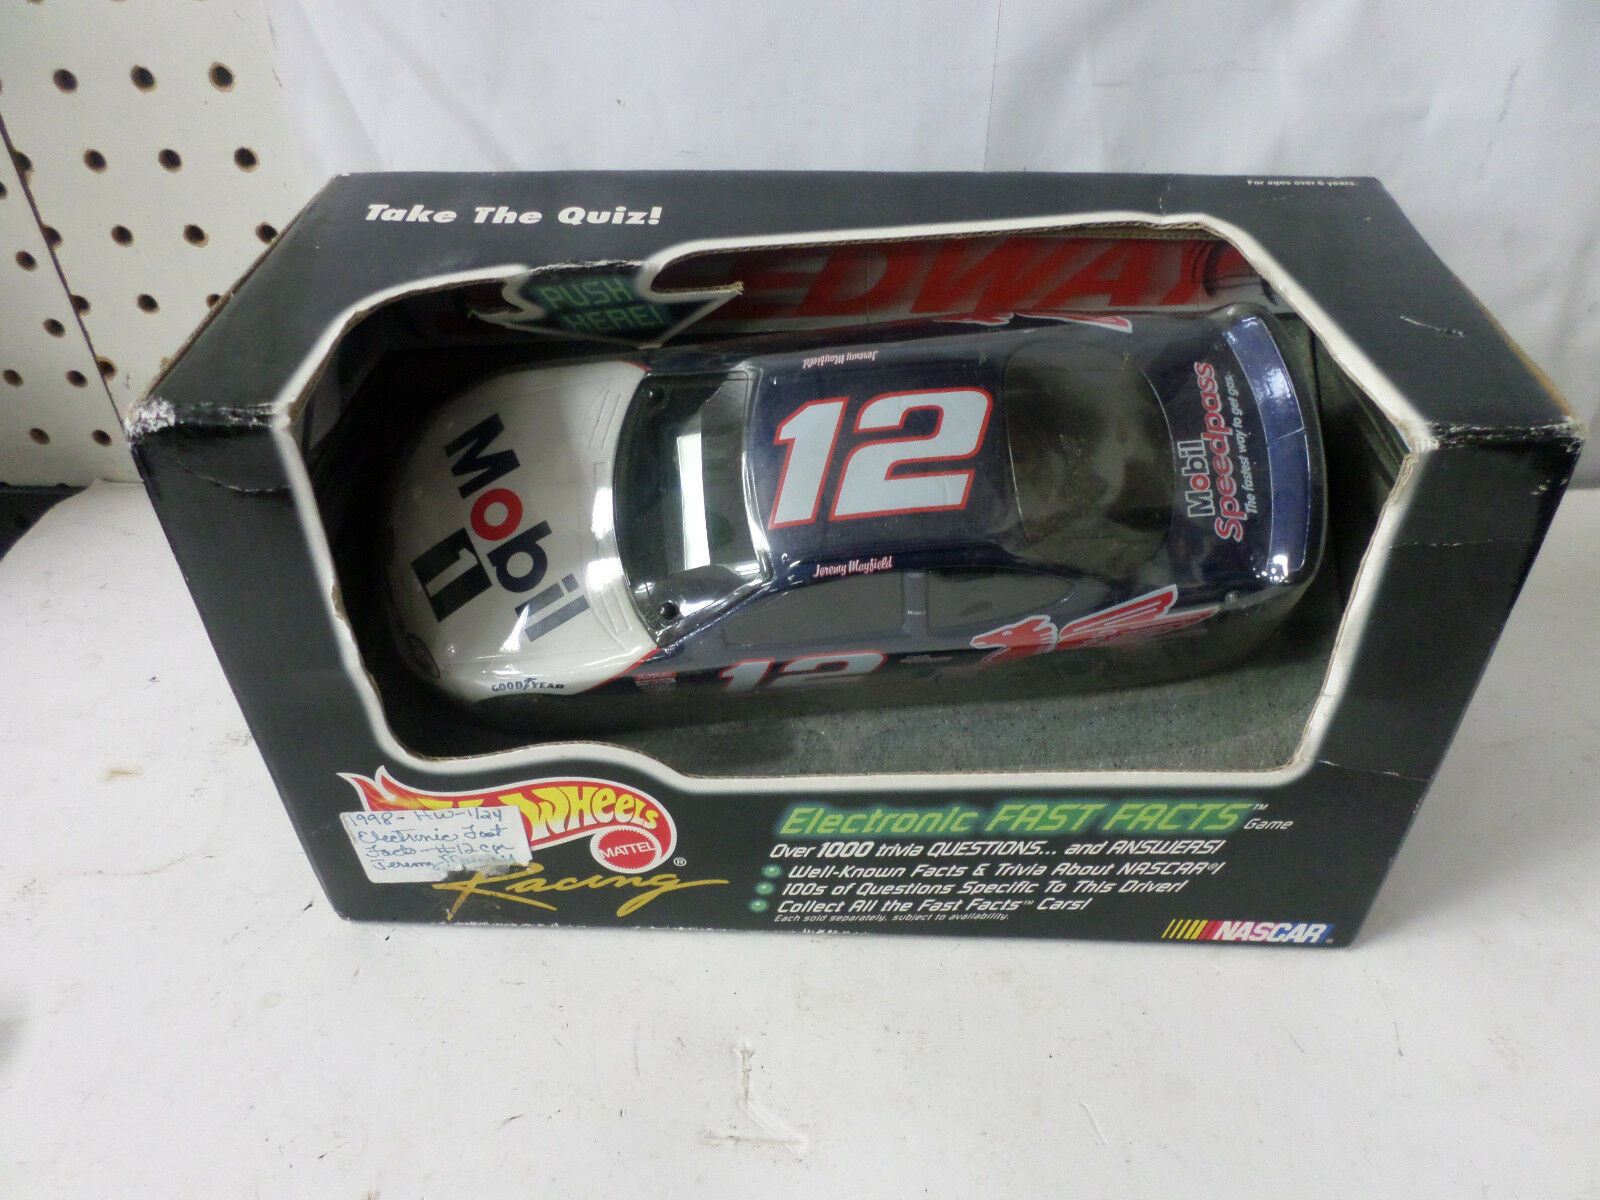 1998 Hot Wheels Racing Mobil 1 Jeremy Mayfield Electronic Fast Facts